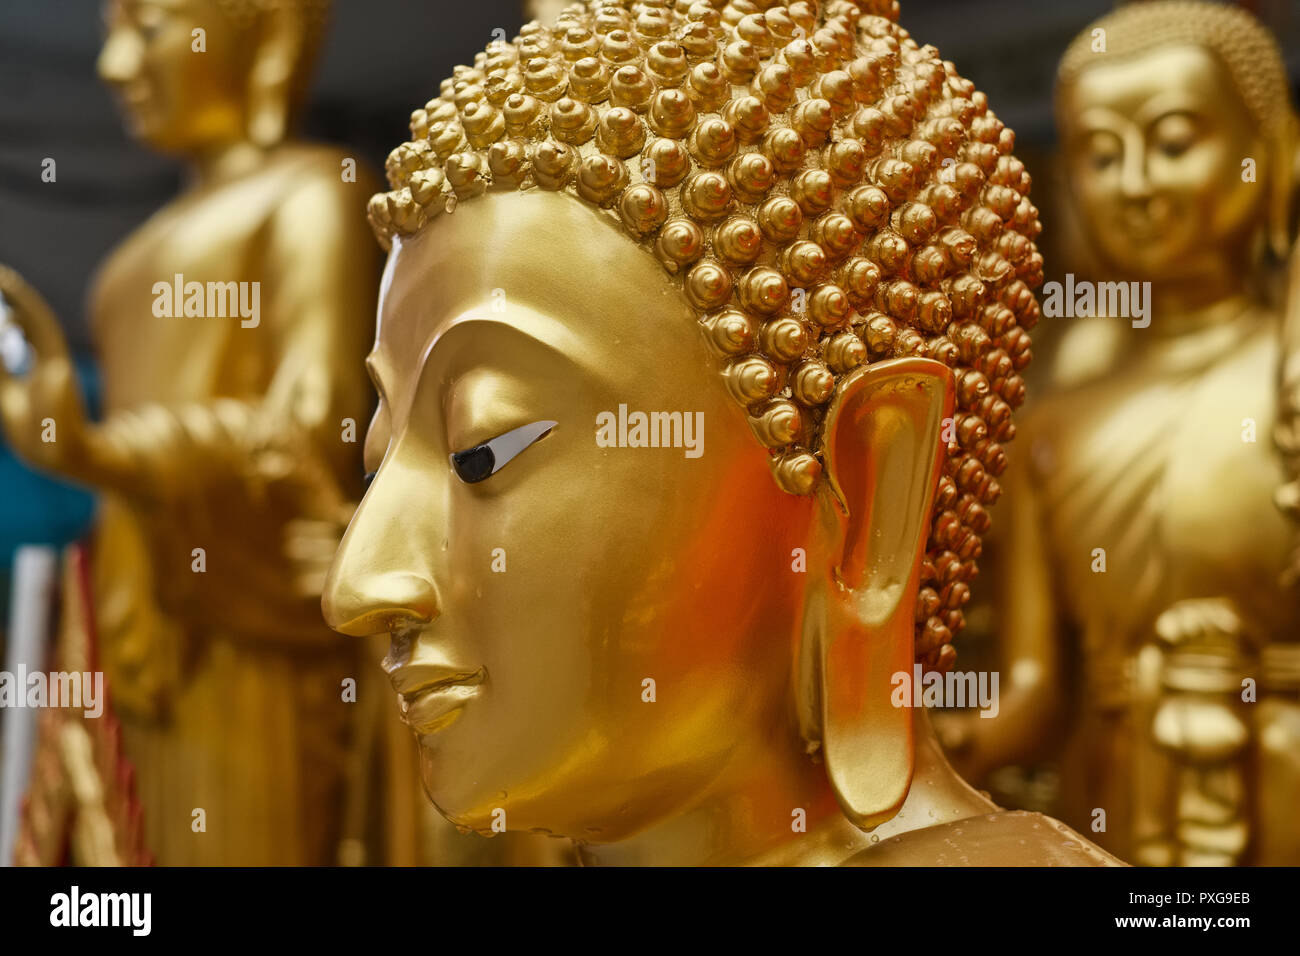 Outside a factory-shop for Buddhist artifacts in Bamrung Muang Rd., Bangkok, Thailand, Buddha statues wait to be transported for sale - Stock Image